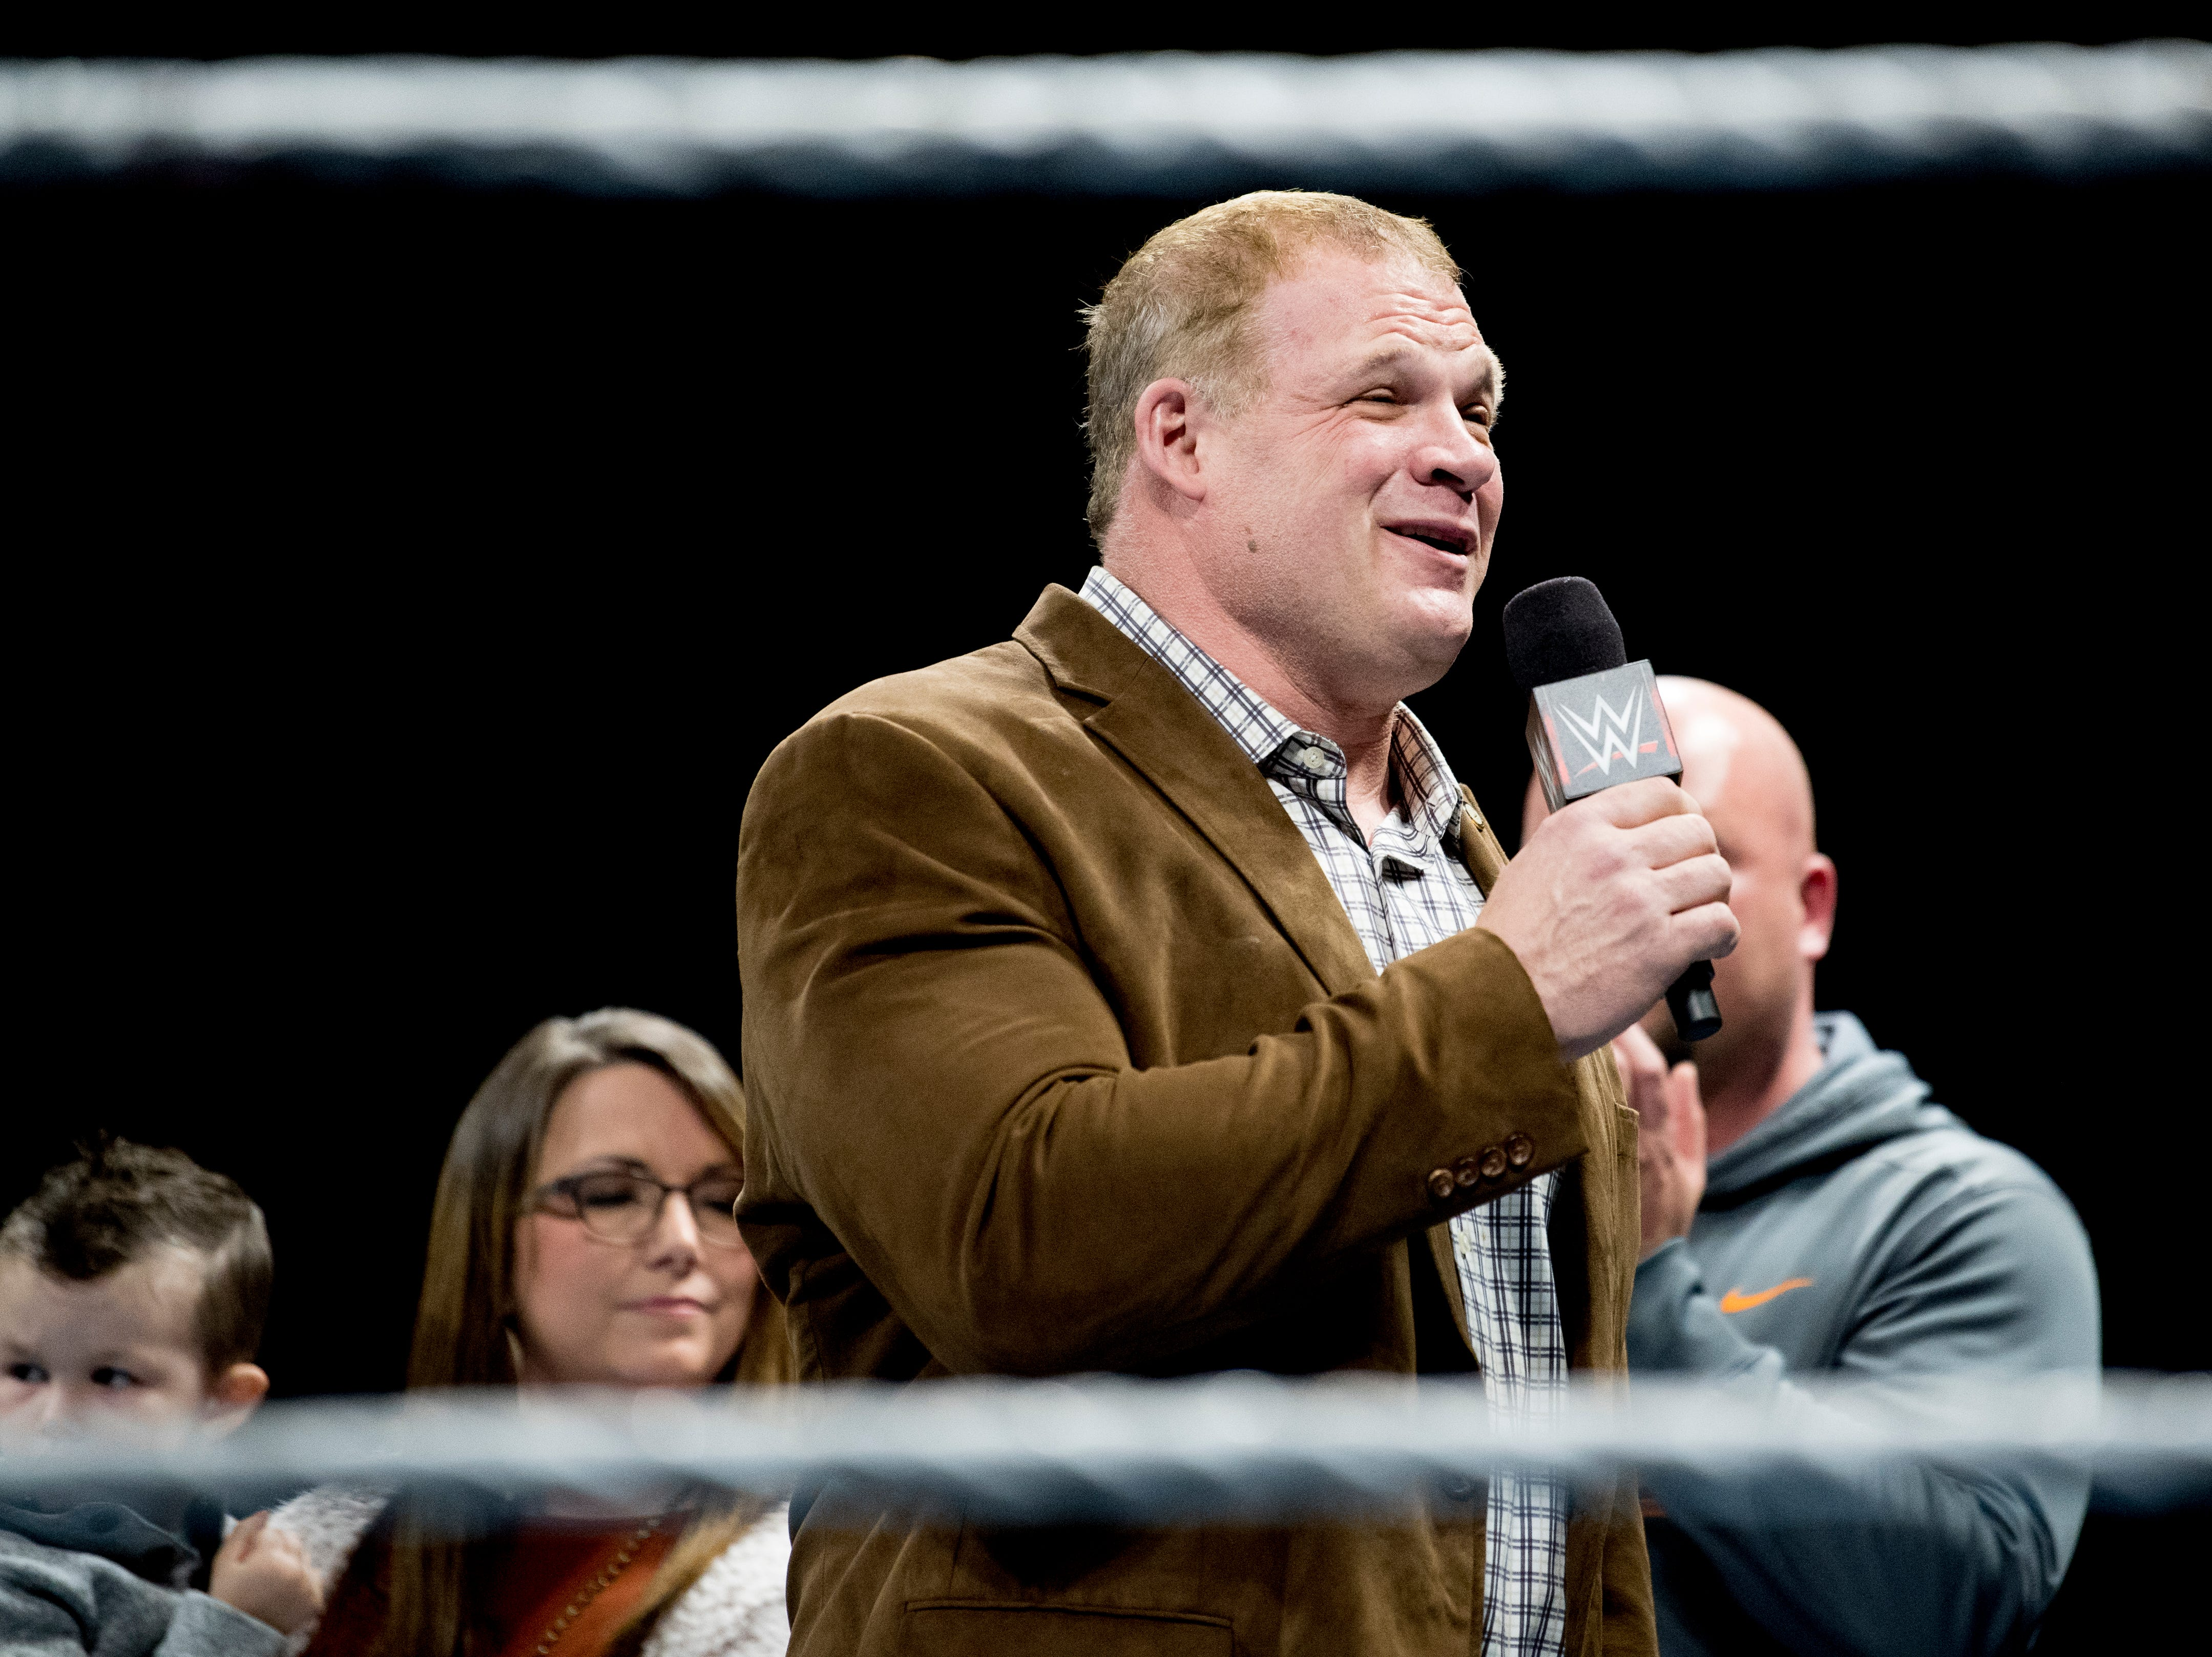 Knox County Mayor Glenn Jacobs, aka Kane, speaks during a WWE Live performance at the Knoxville Civic Coliseum in Knoxville, Tennessee on Saturday, January 12, 2019. *KNOXVILLE NEWS SENTINEL USE ONLY*